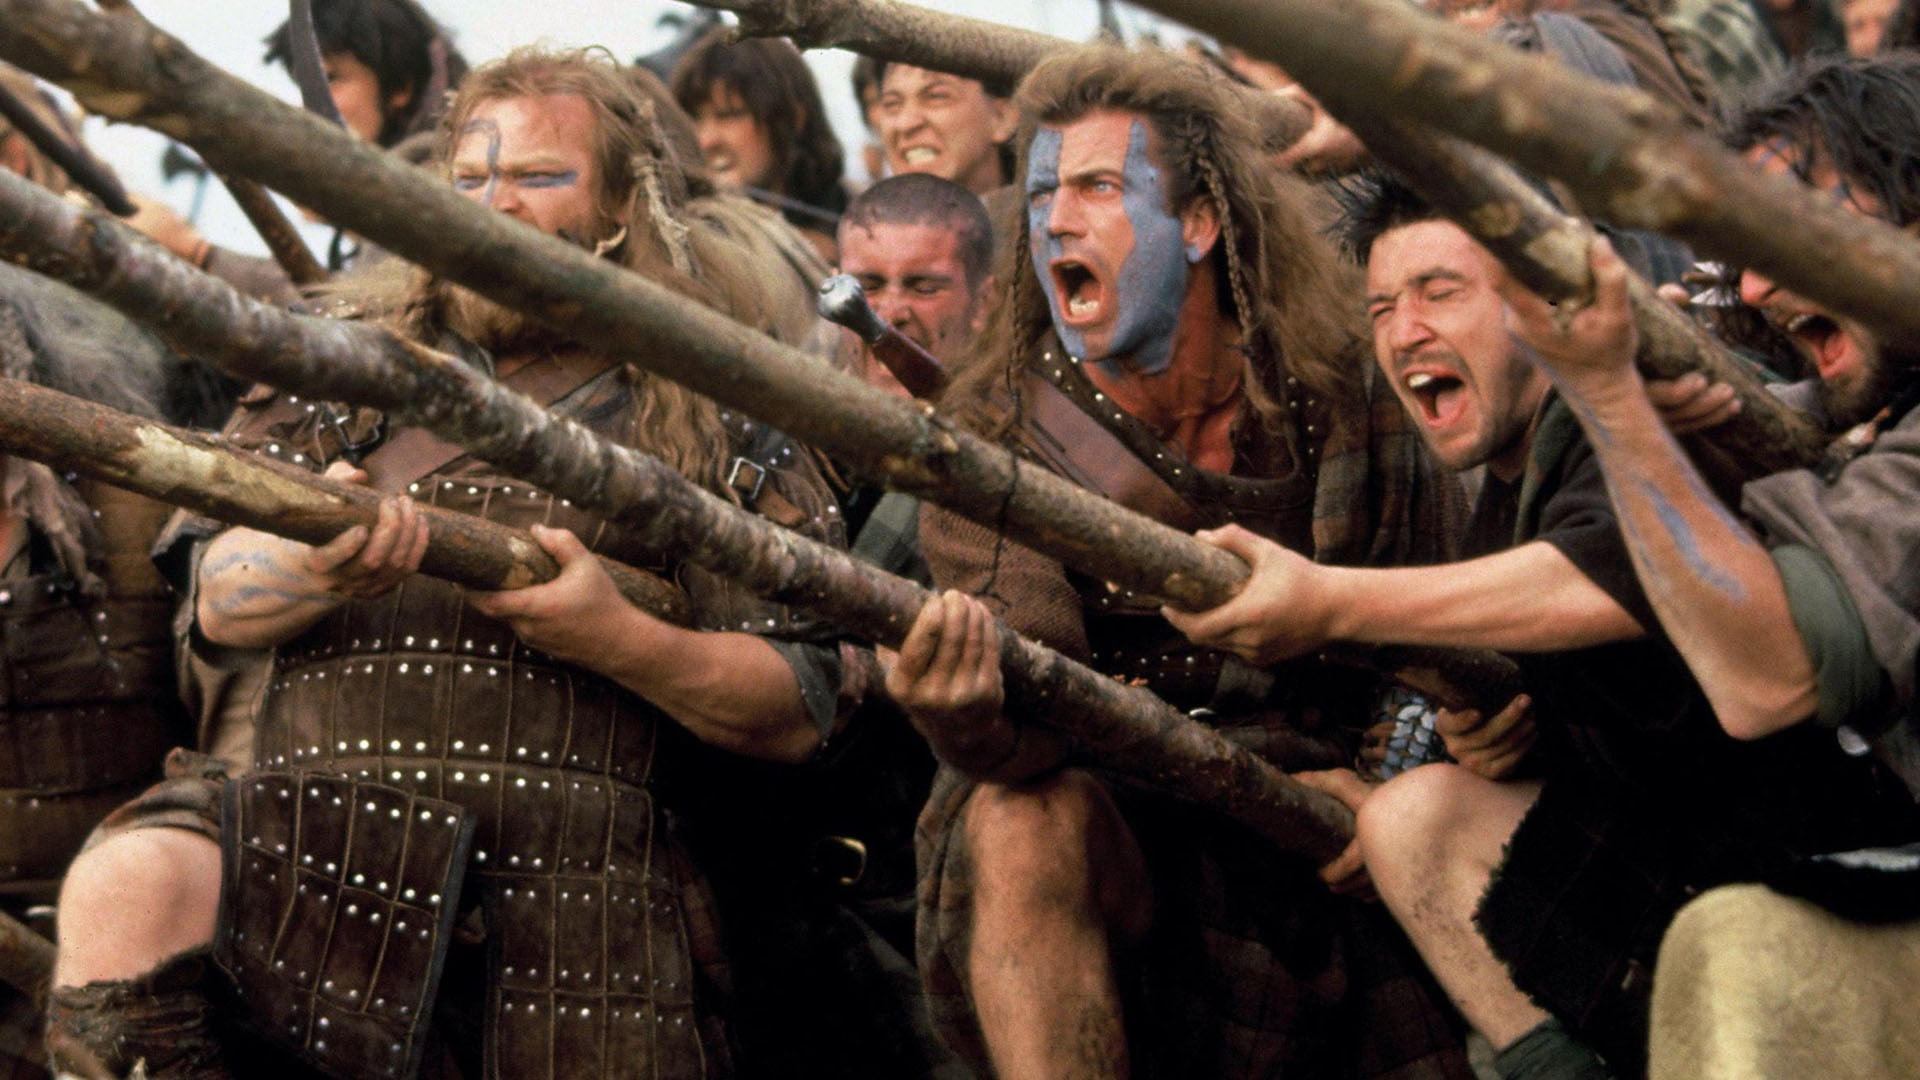 Image from the movie Braveheart